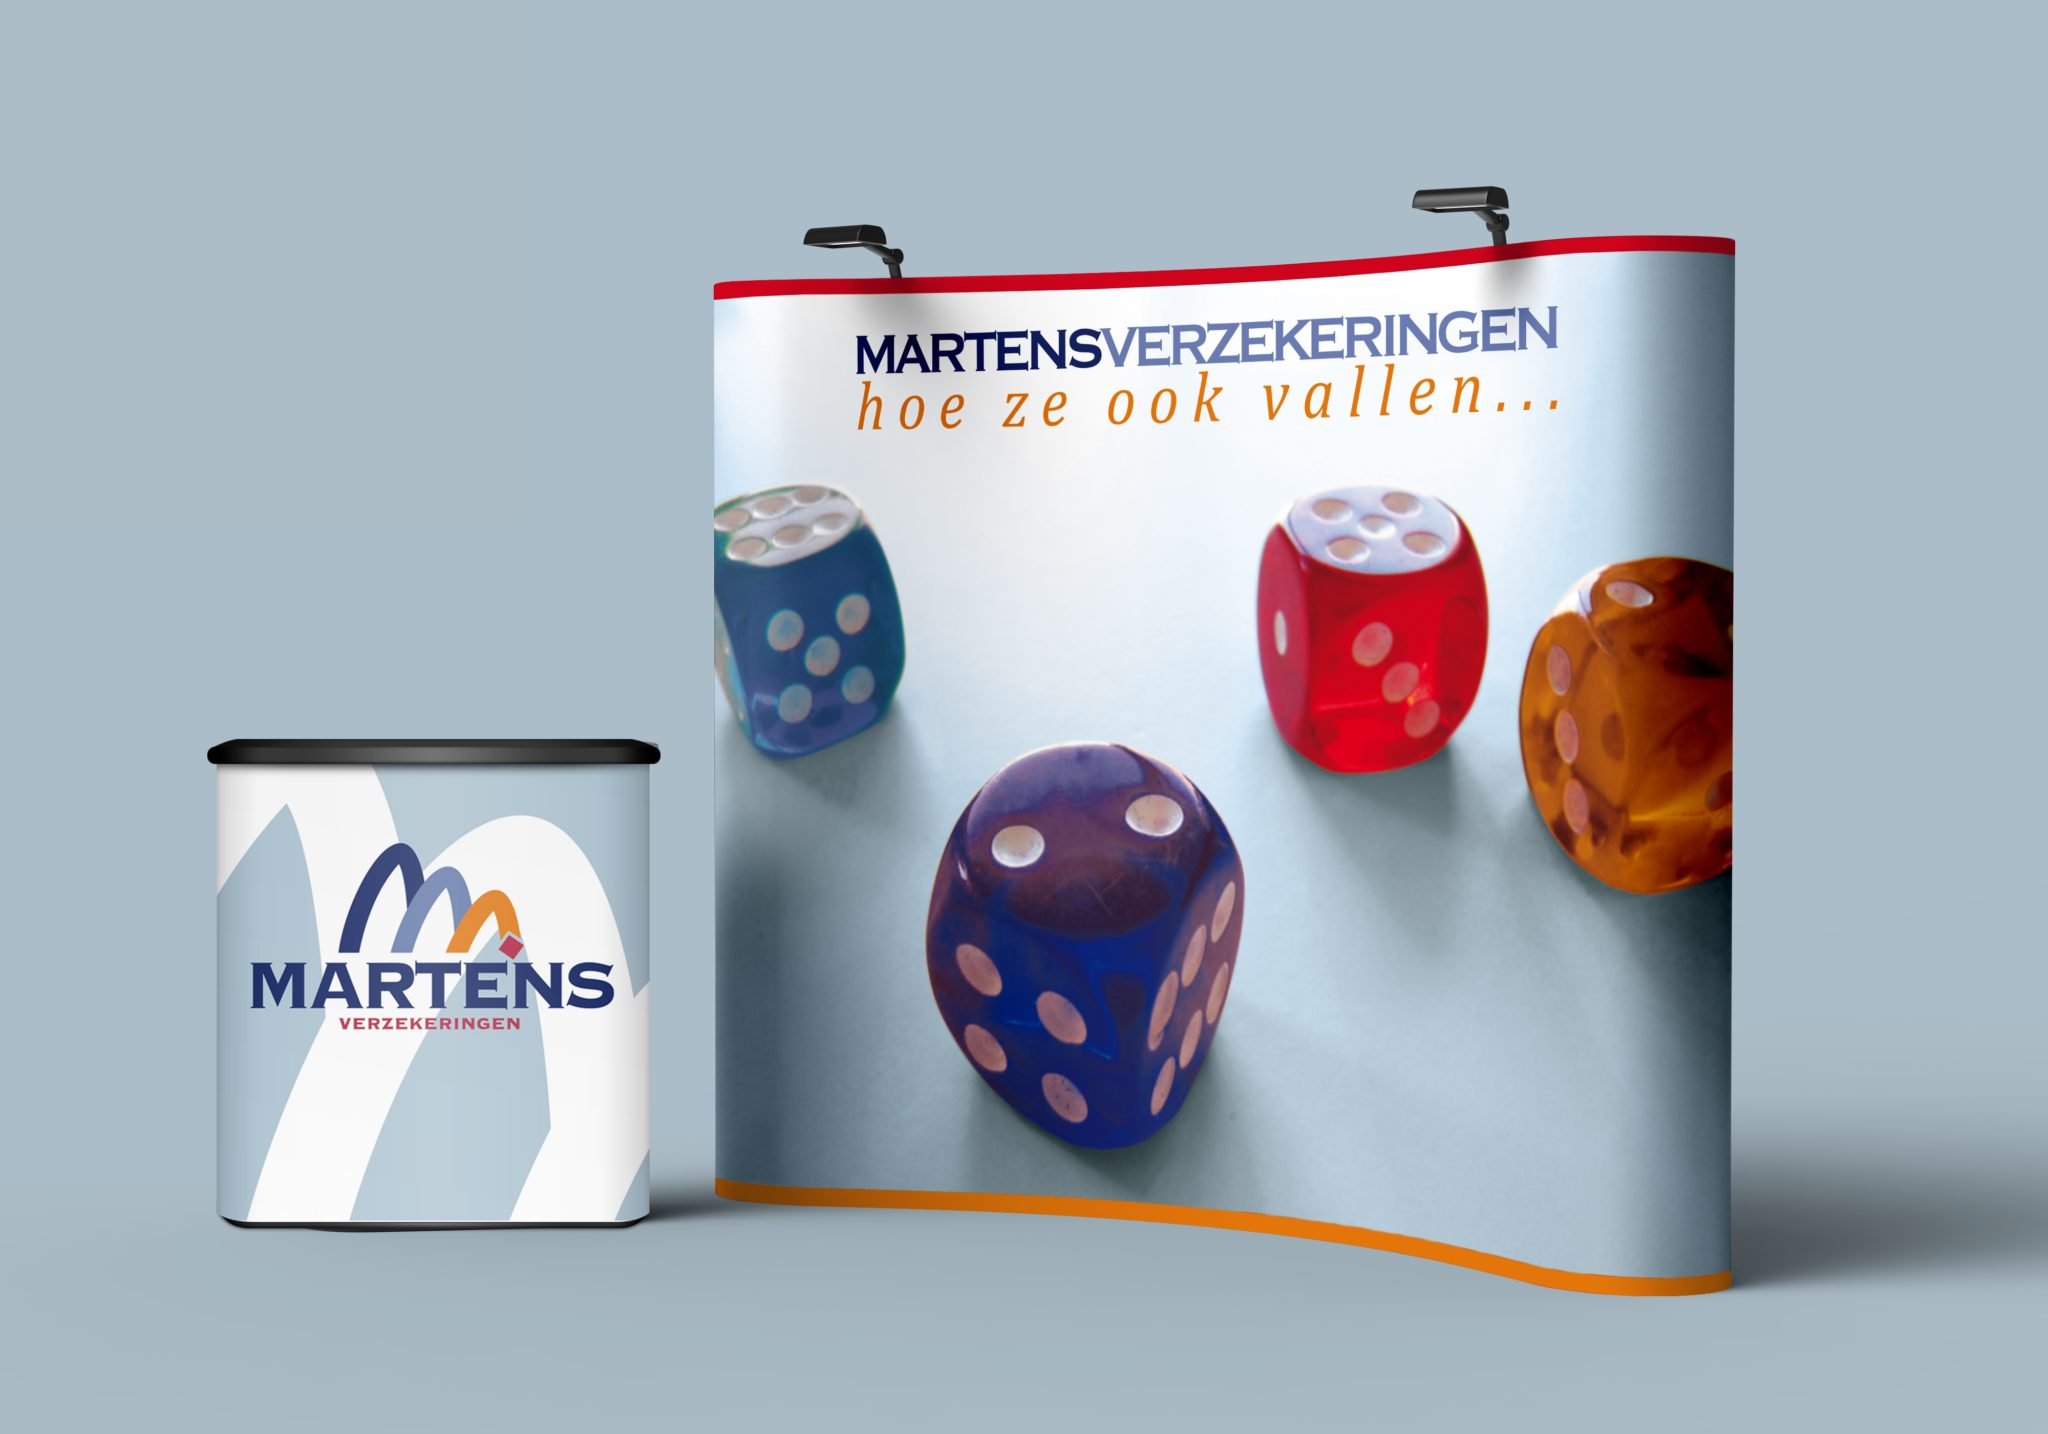 Martens verzekeringen Pop-up stand